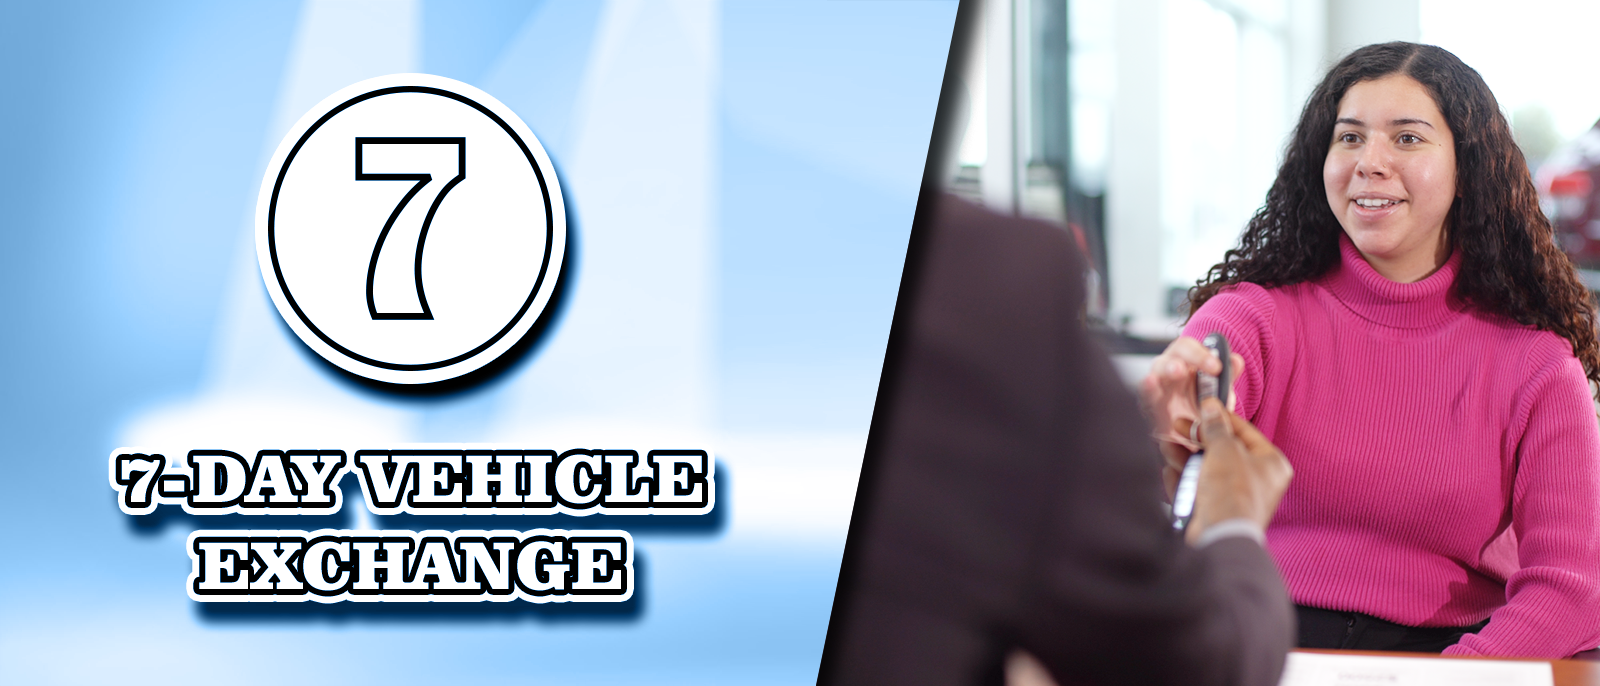 3-Day Guarantee or 7-Day Vehicle Exchange at Clay Cooley Hyundai of Rockwall